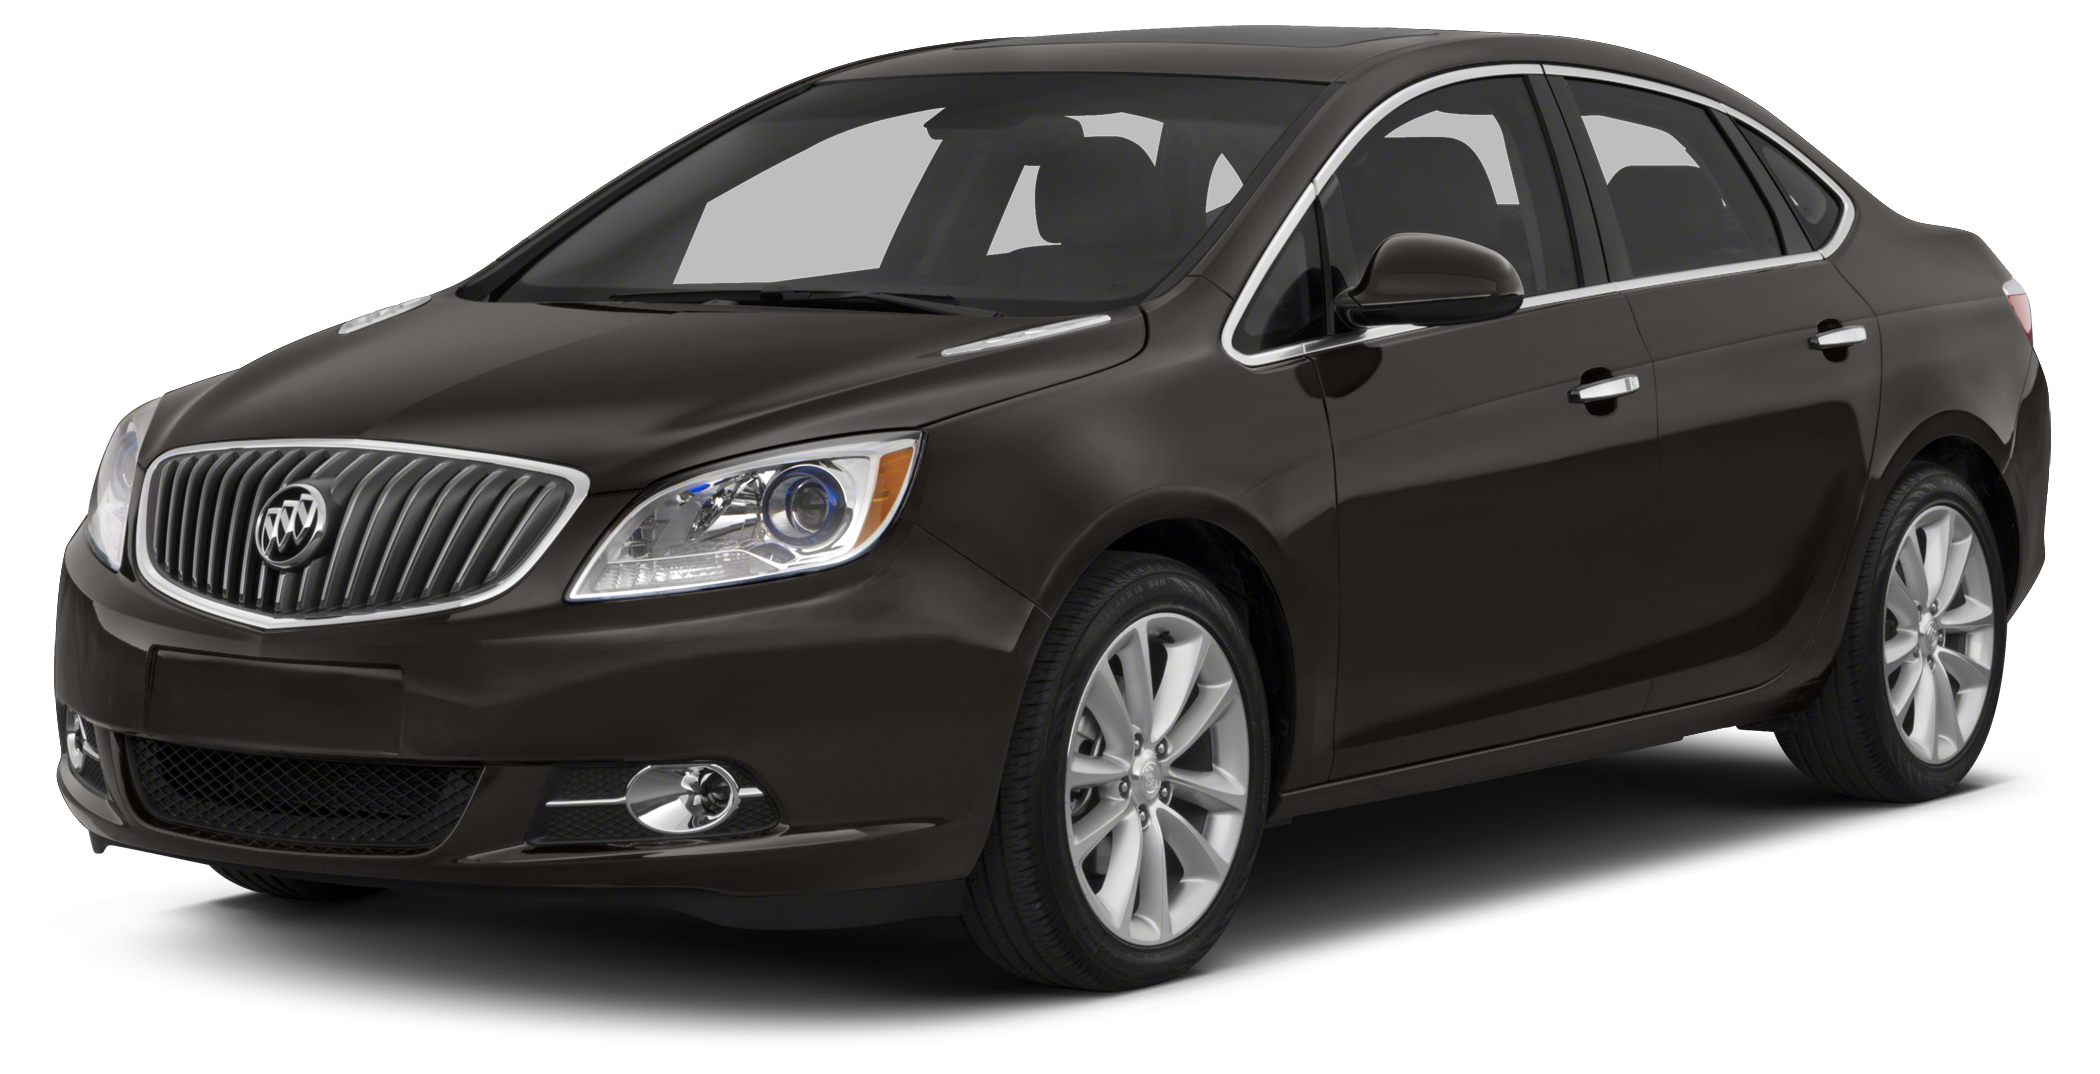 2013 Buick Verano Base Excellent Condition GREAT MILES 30016 Verano trim EPA 32 MPG Hwy21 MPG